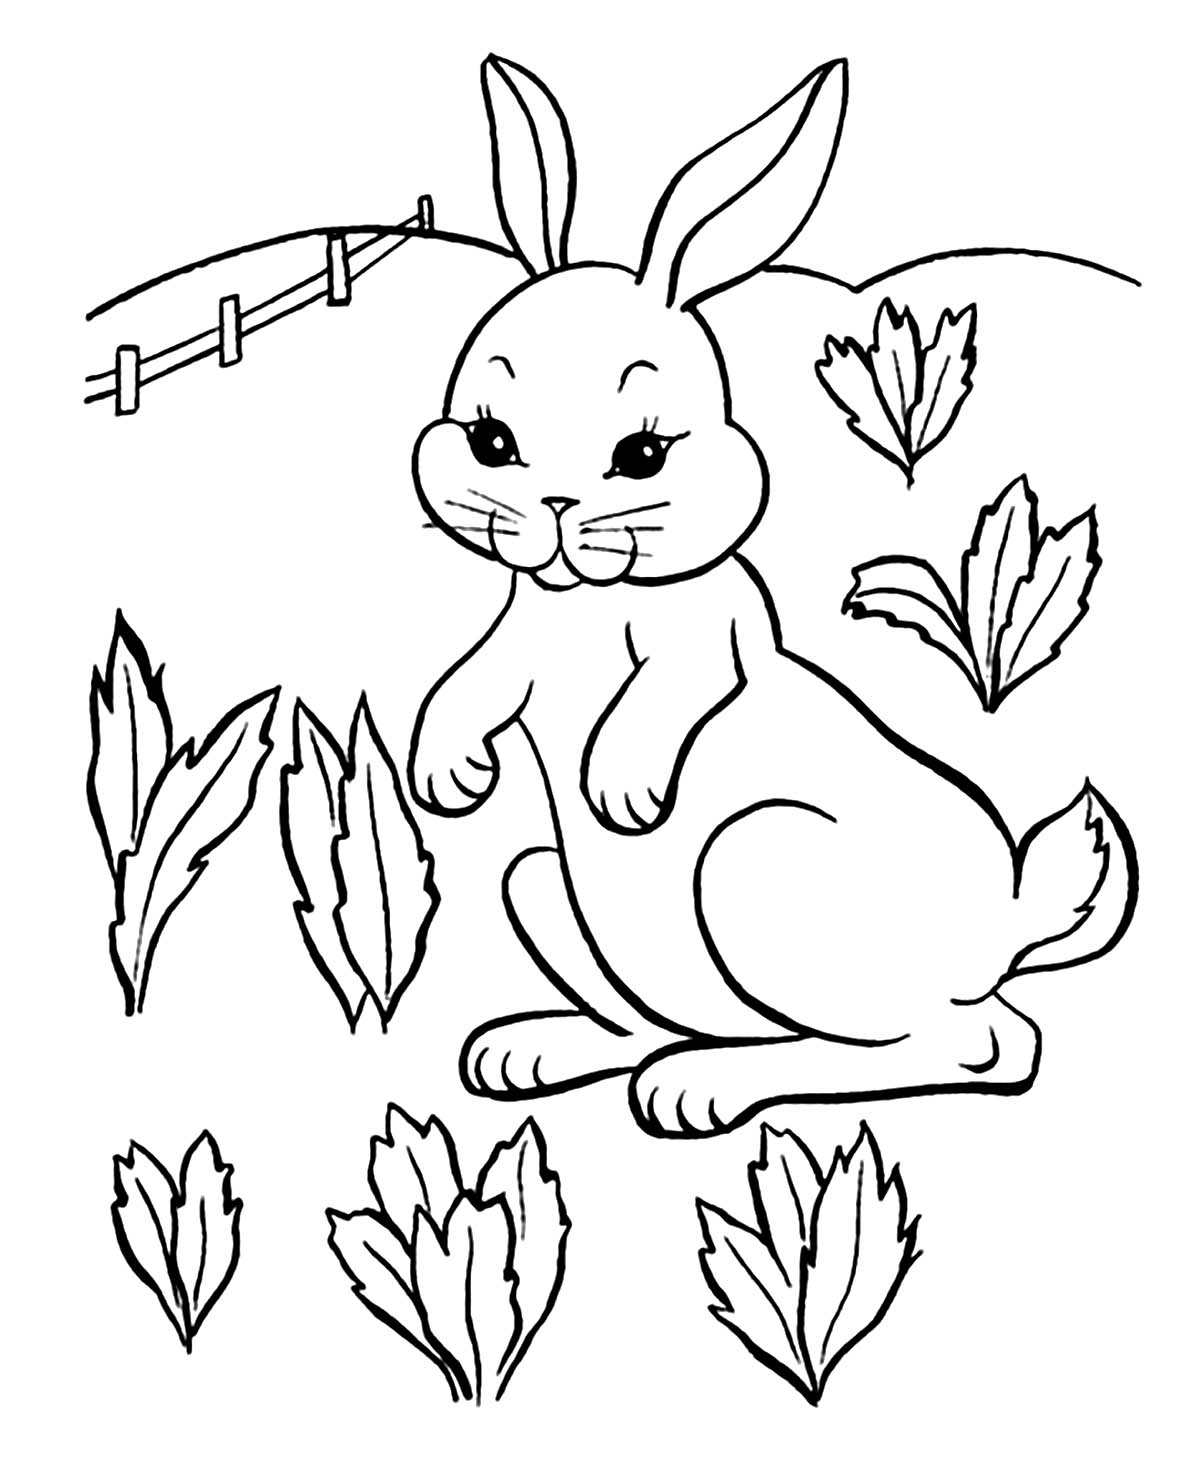 rabbit color pages rabbit to print for free rabbit kids coloring pages pages rabbit color